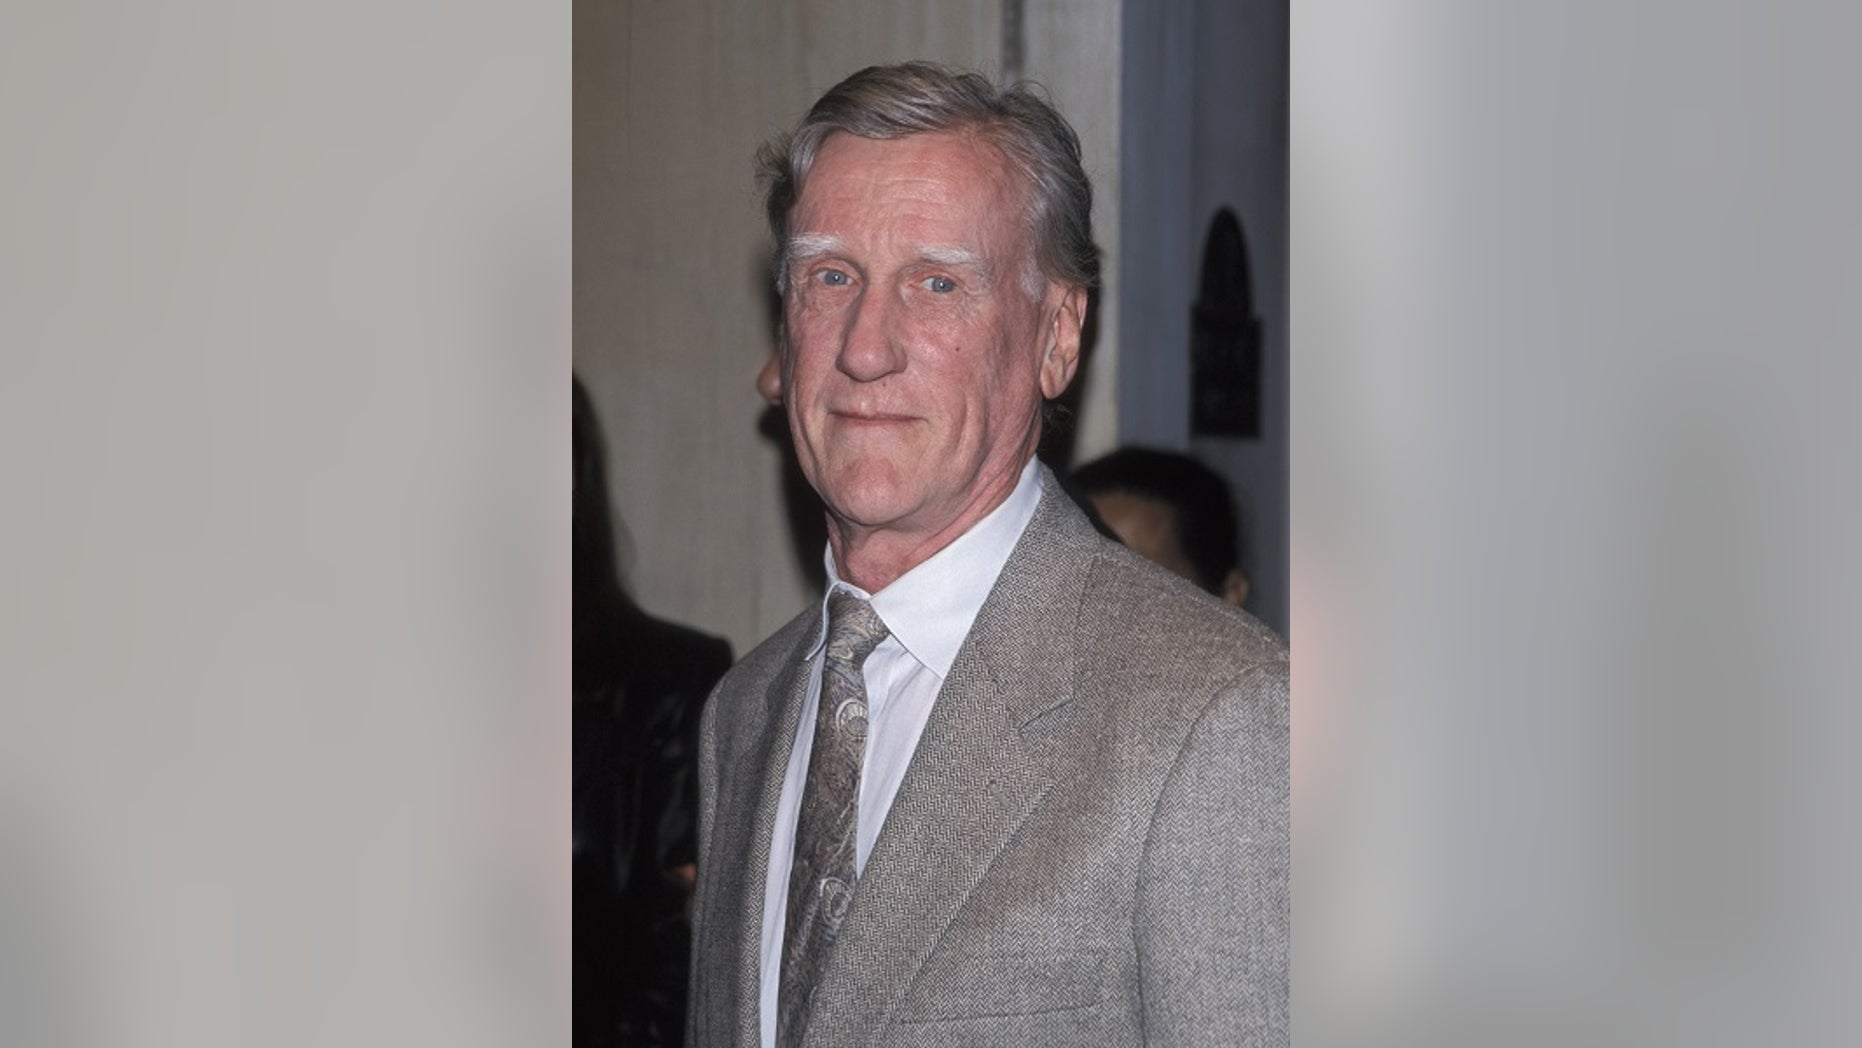 Donald Moffat died on Thursday, Dec. 20, 2018.